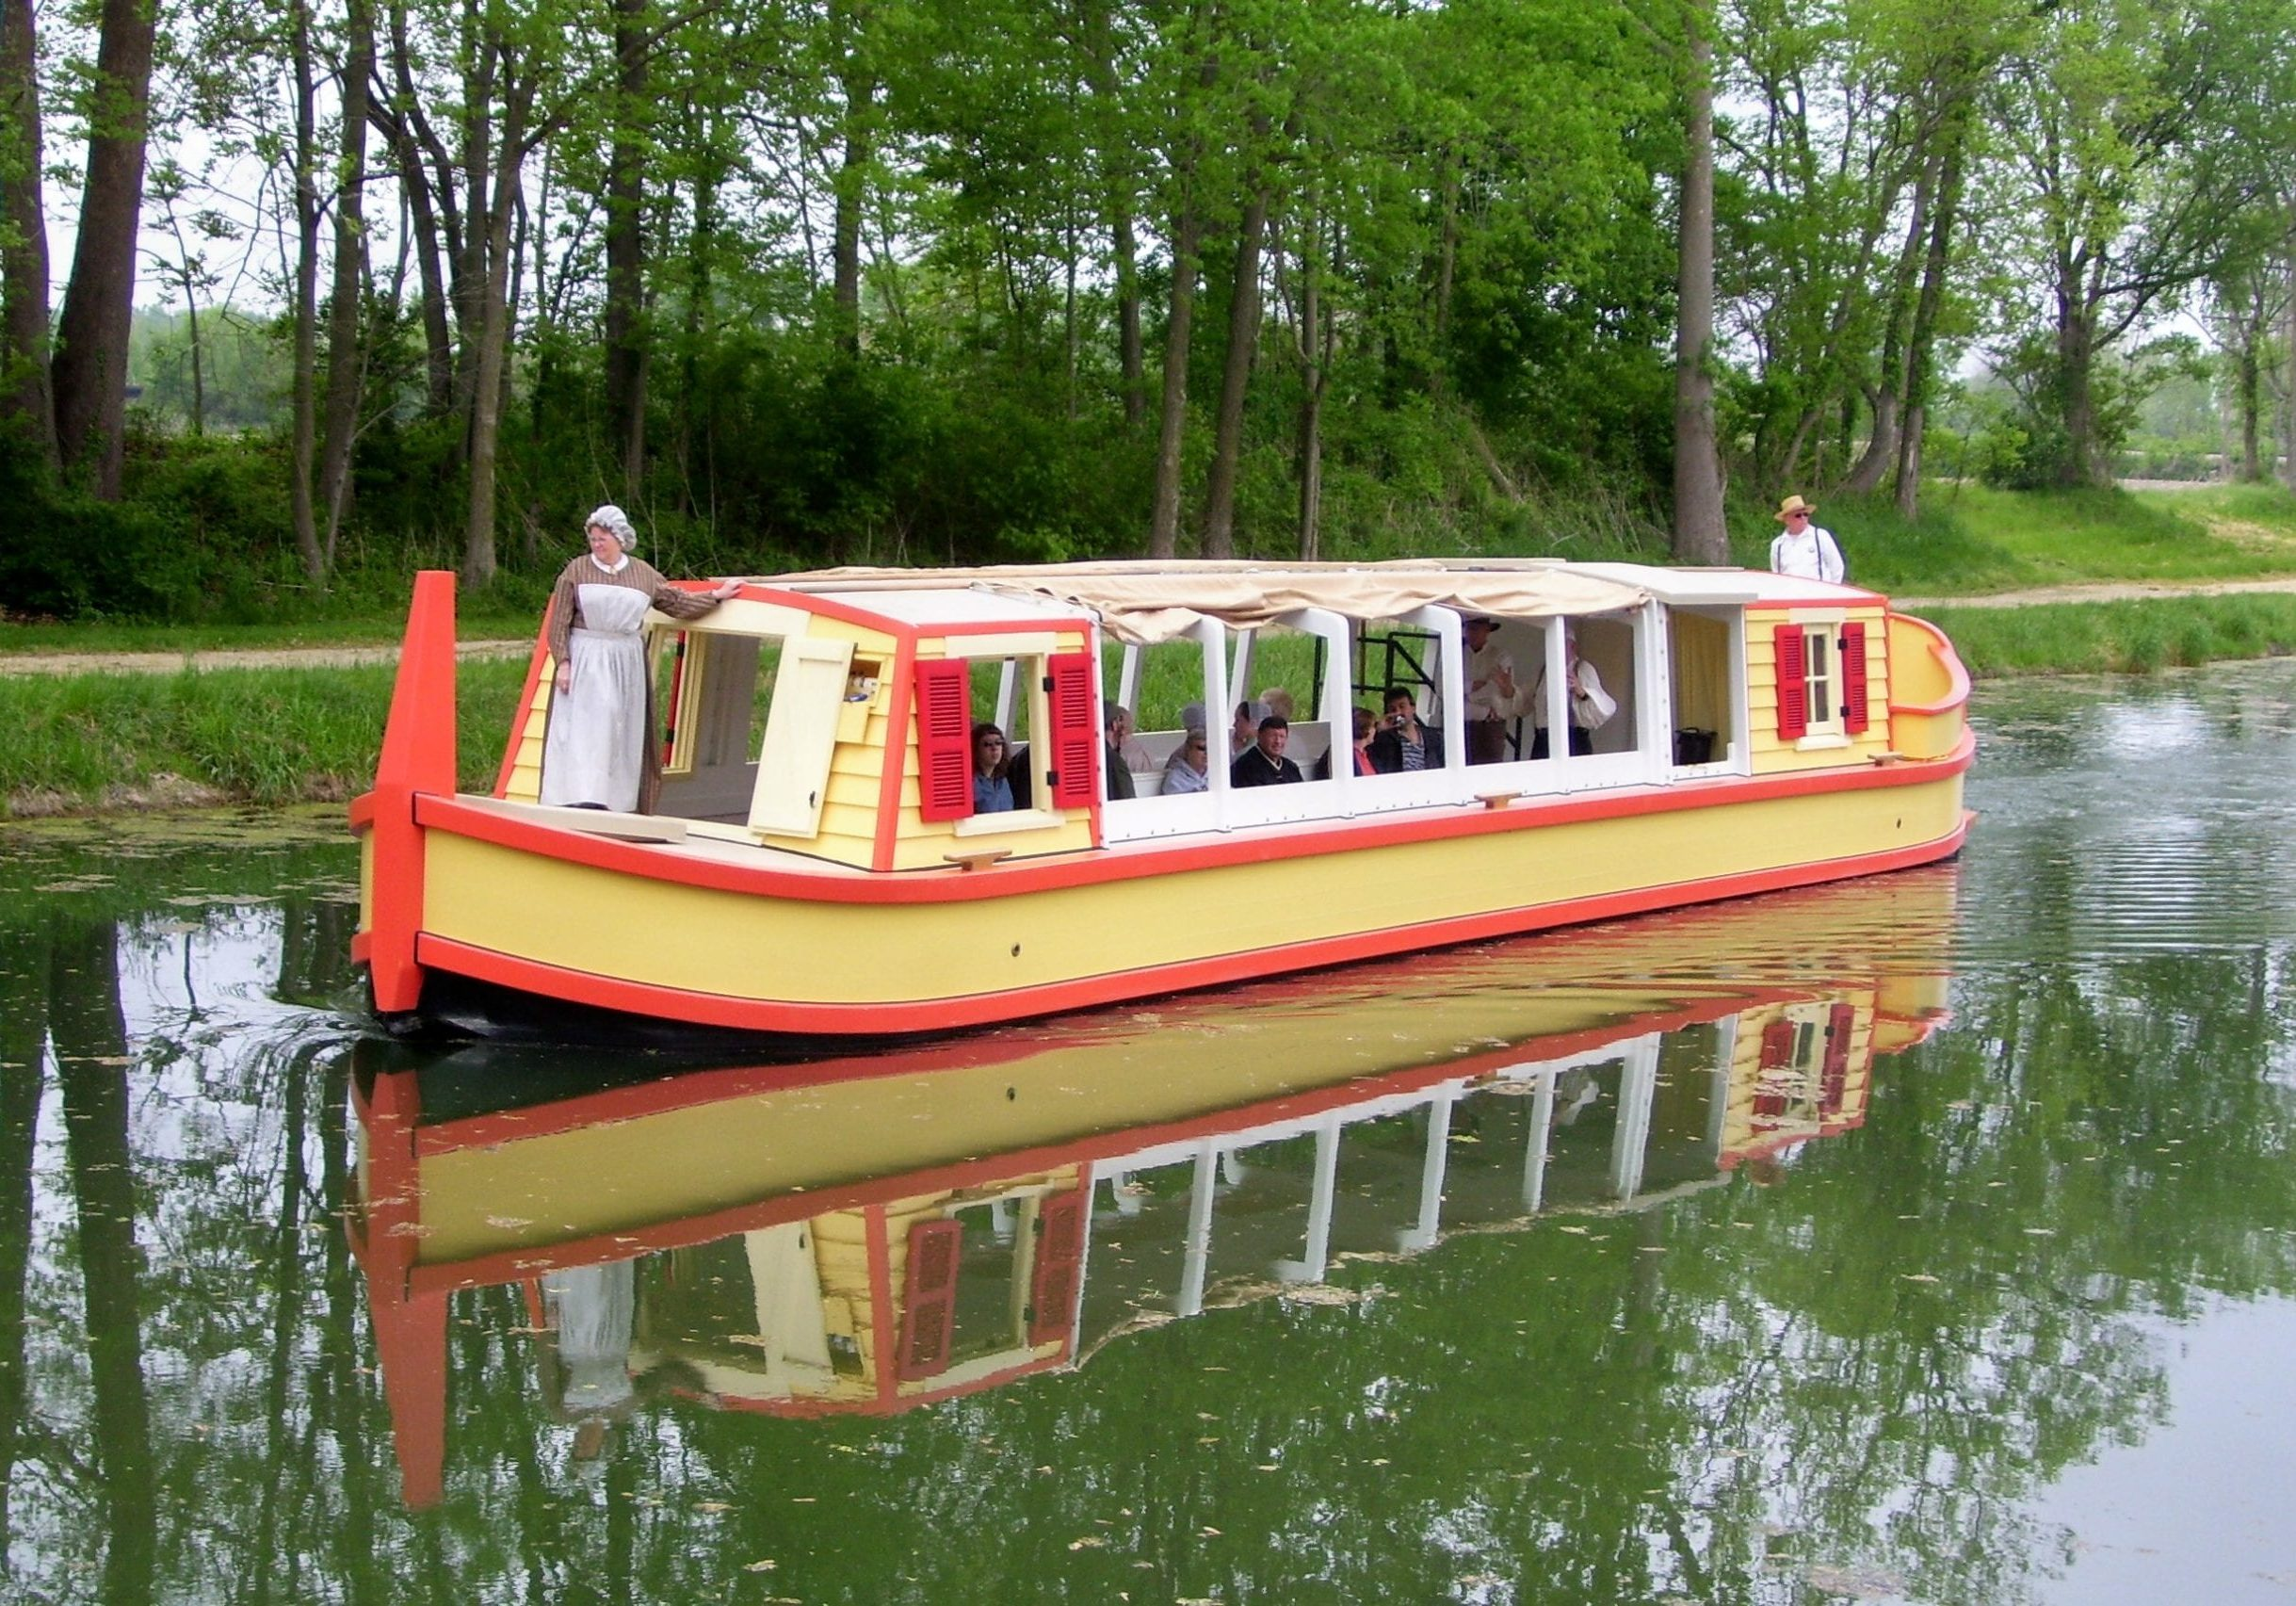 take a relaxing cruz on our historical canal boat